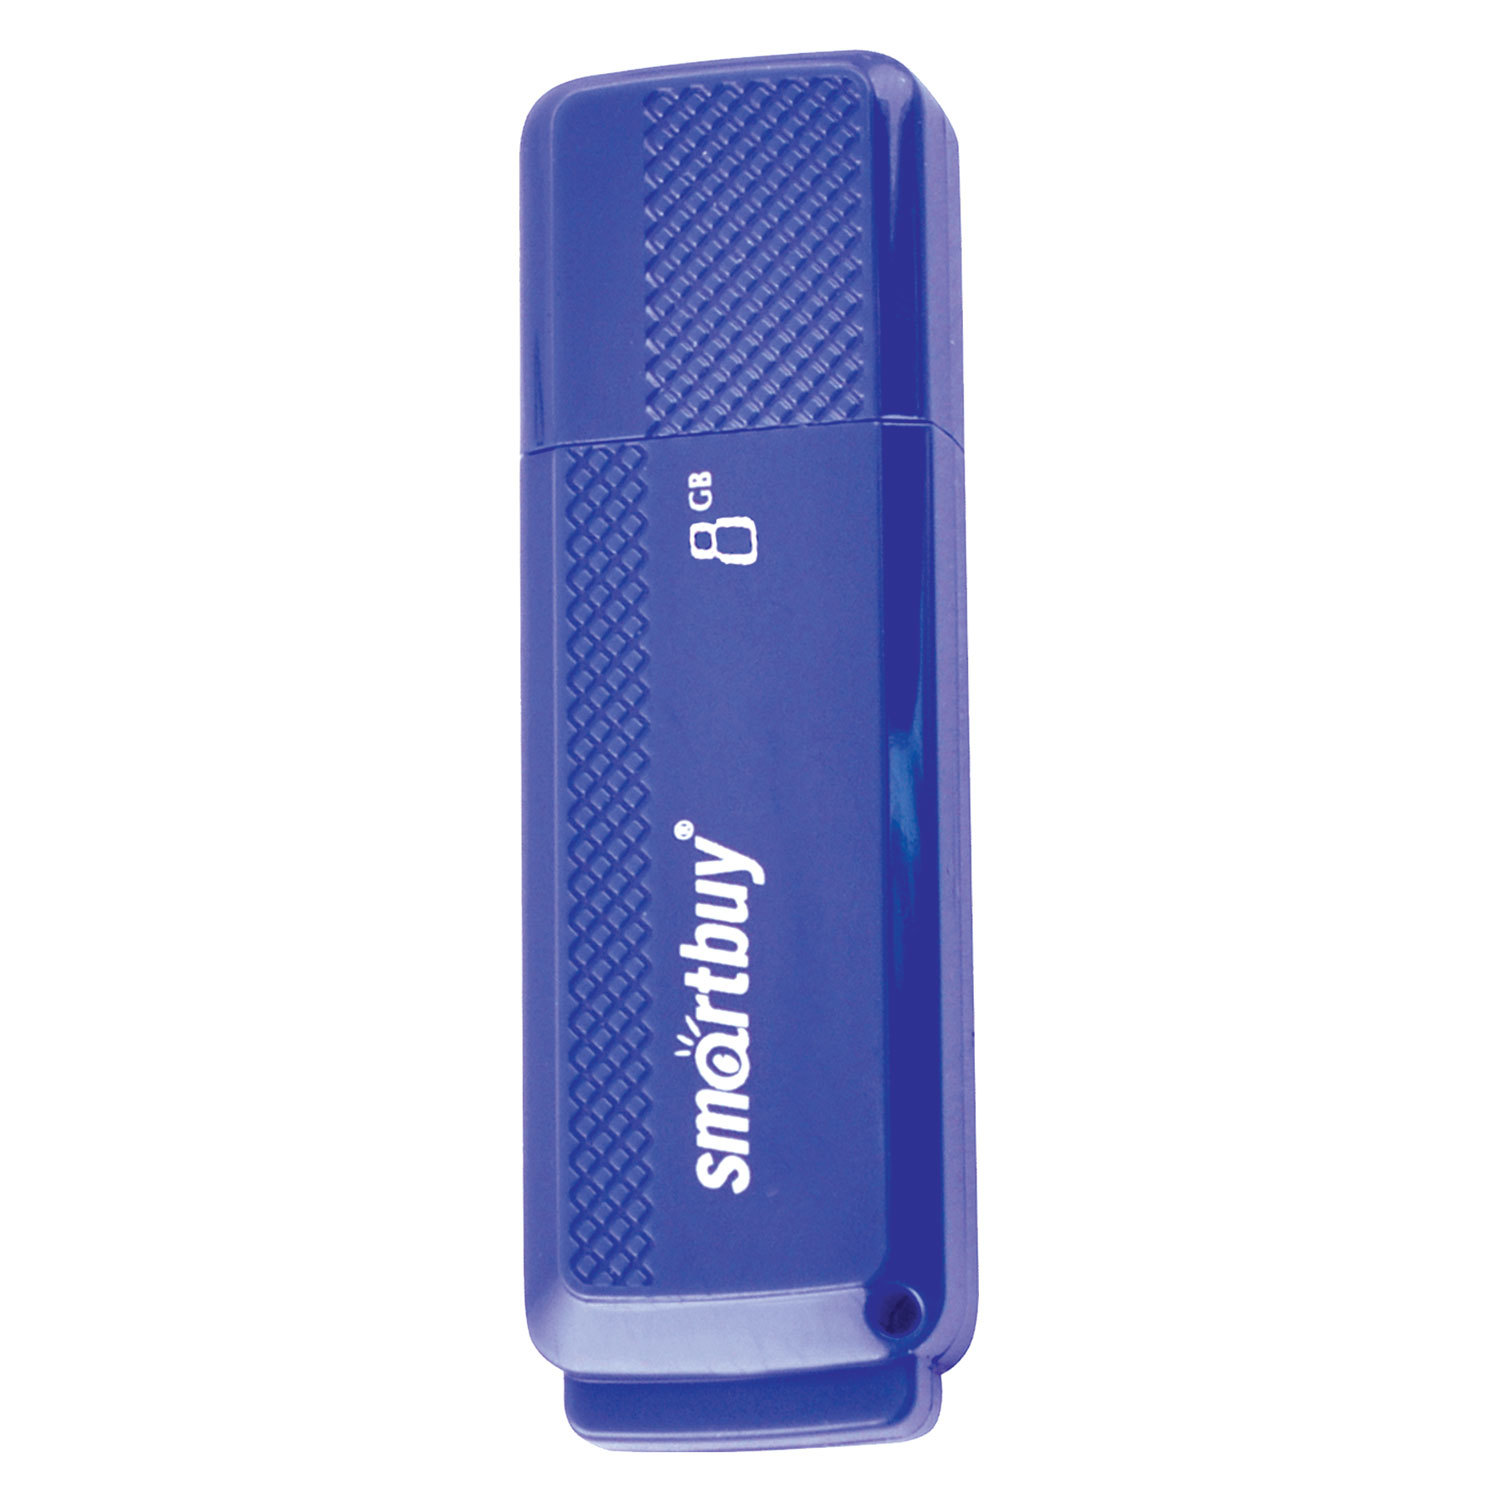 Флеш-диск 8 GB, SMARTBUY Dock, USB 2.0, синий, SB8GBDK-B